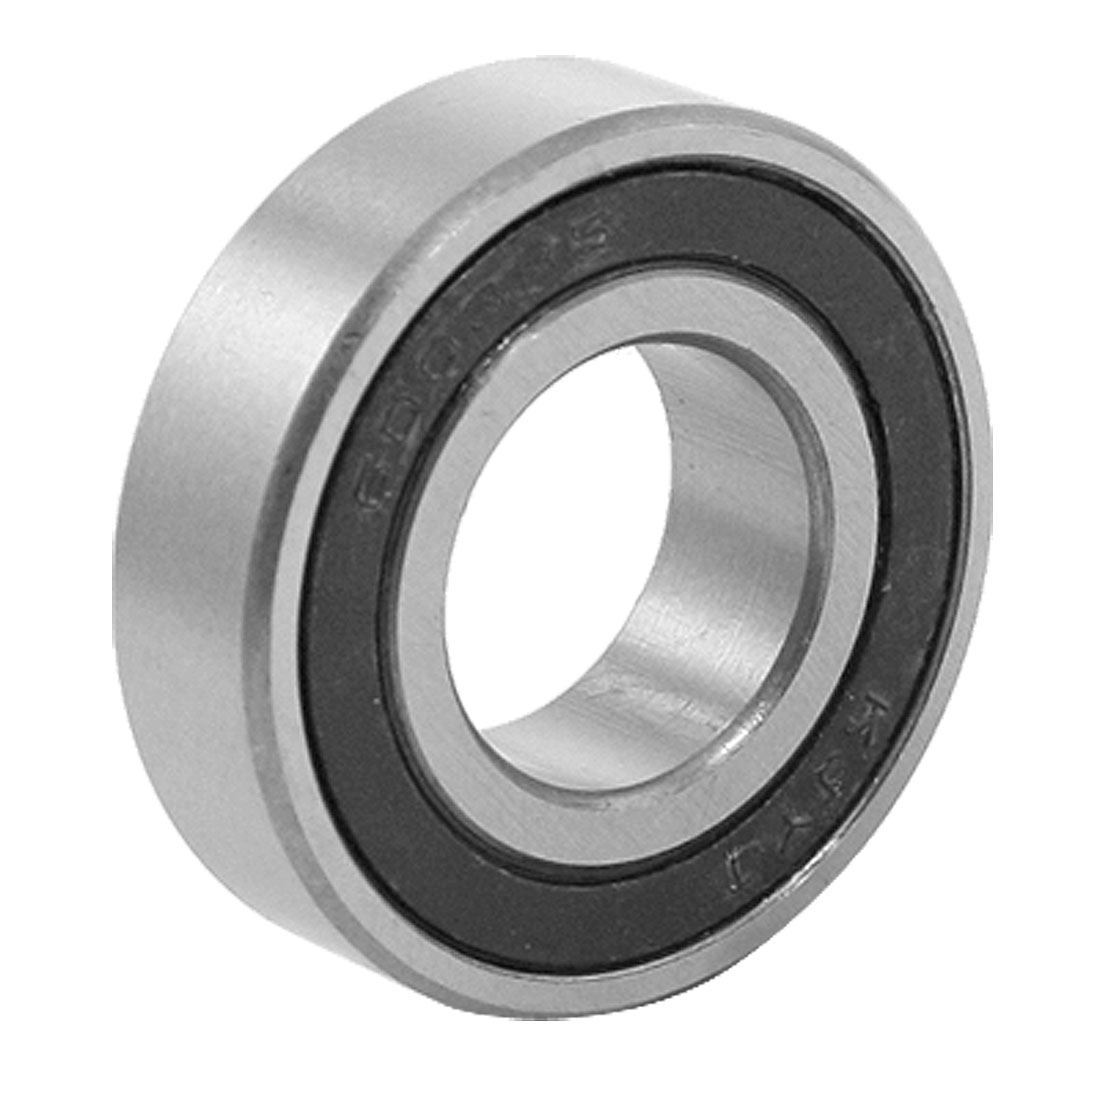 6003RS Black Rubber Double Sealed Deep Groove Ball Bearing 17 x 35 x 10mm